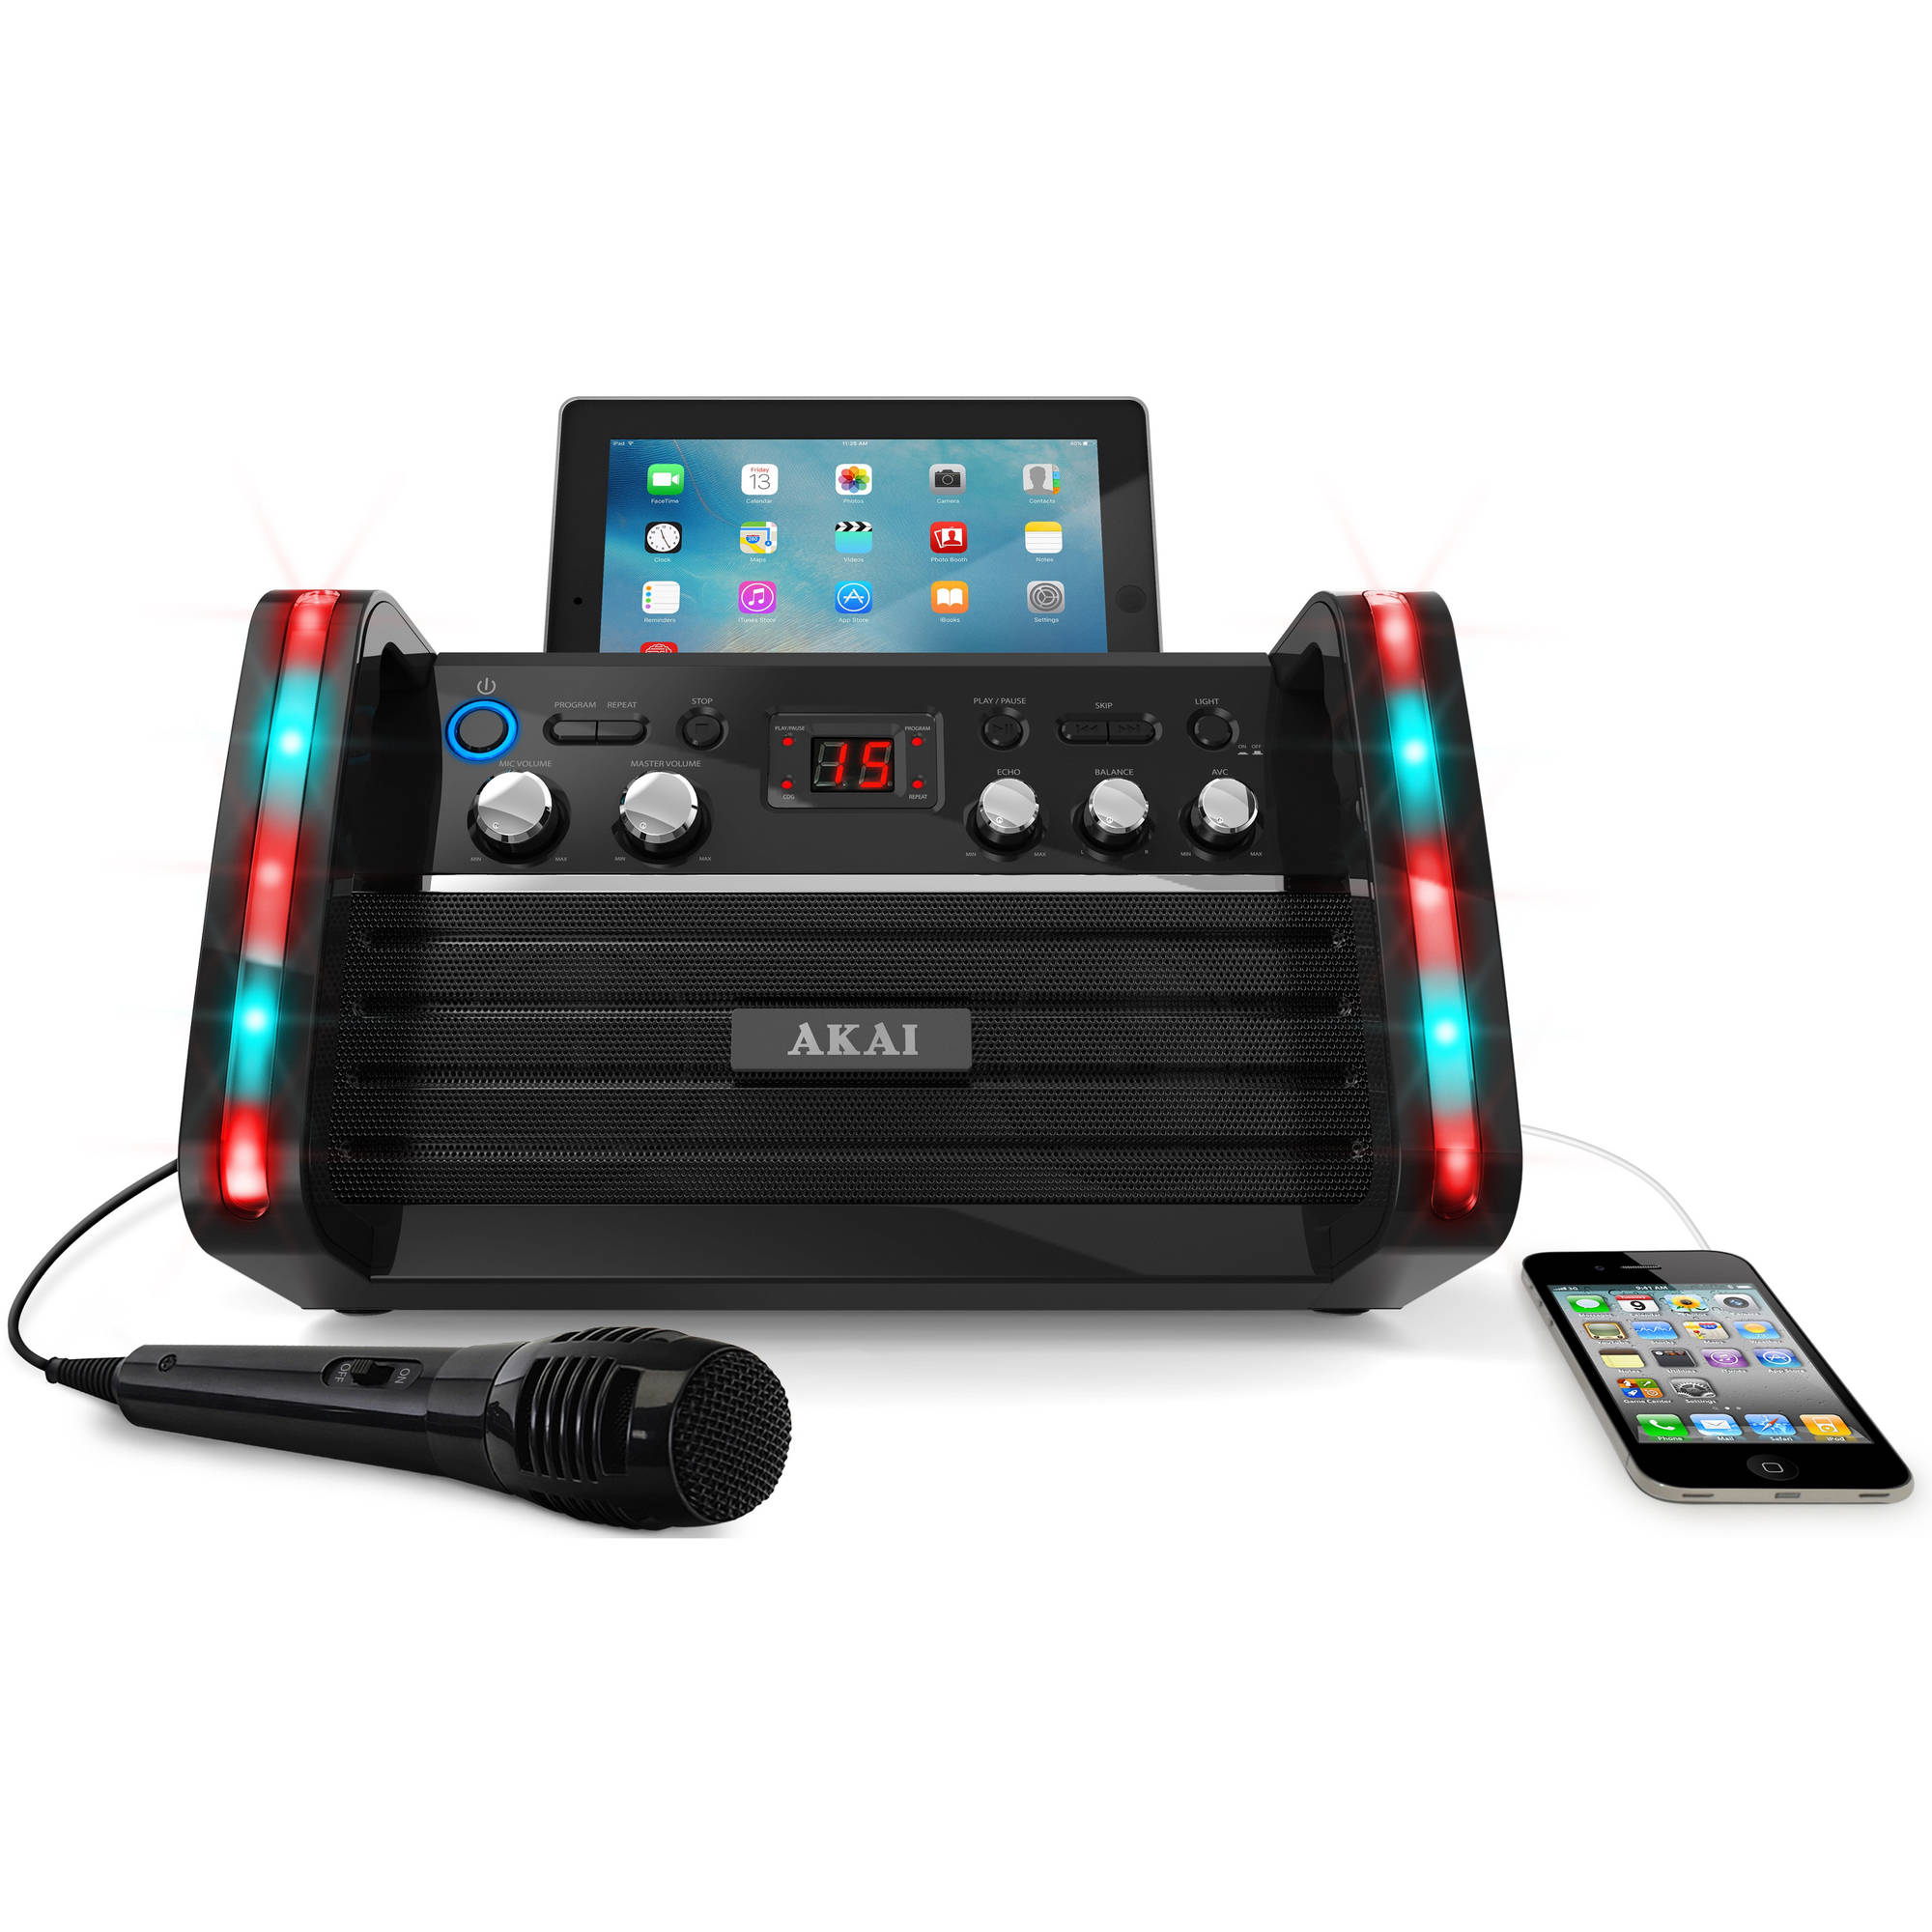 Akai KS-213 CD+G Karaoke Player with Apple iPad/iPod Cradle and Light Effect